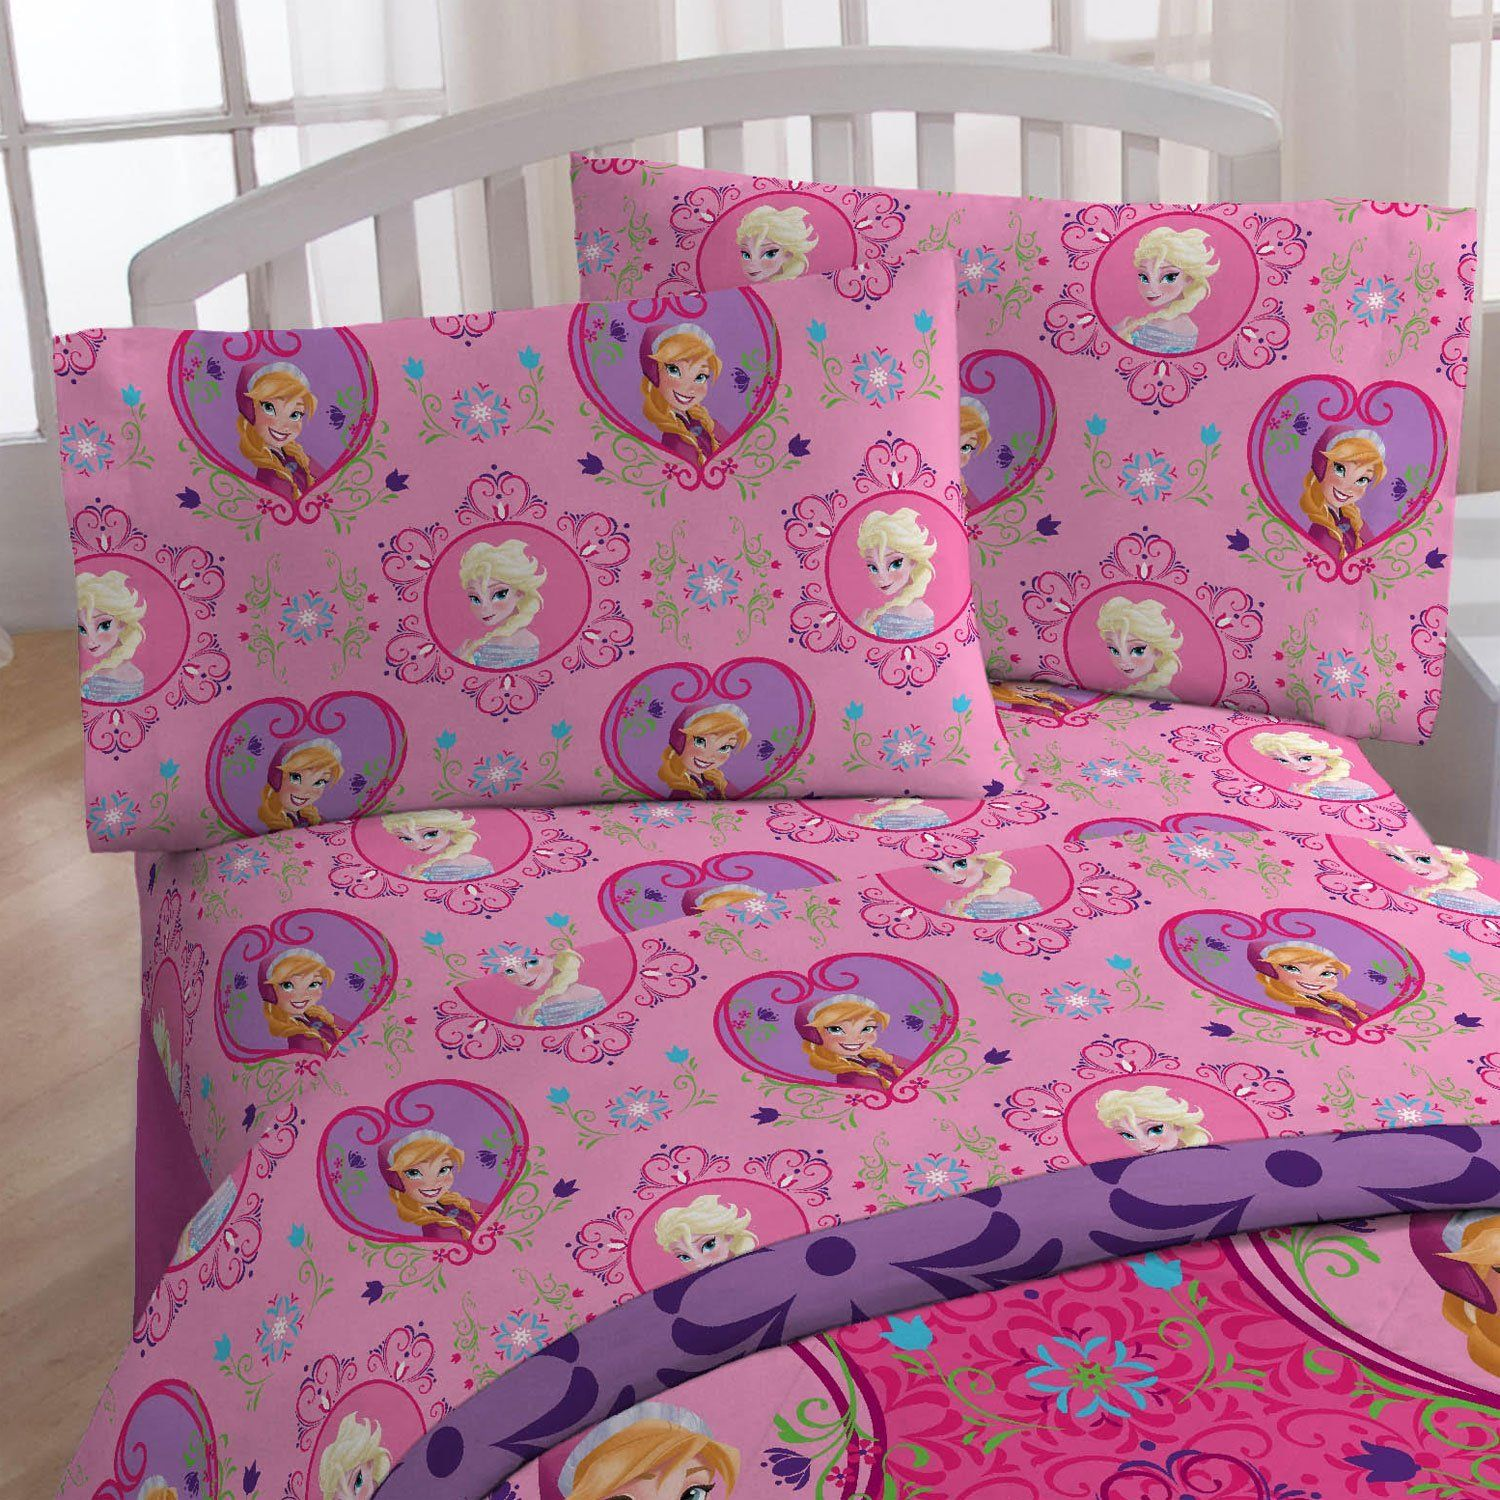 Flannel Comforter Sets Online Sale Kids Bedding Sets Twin Sheet Sets Twin Sheets